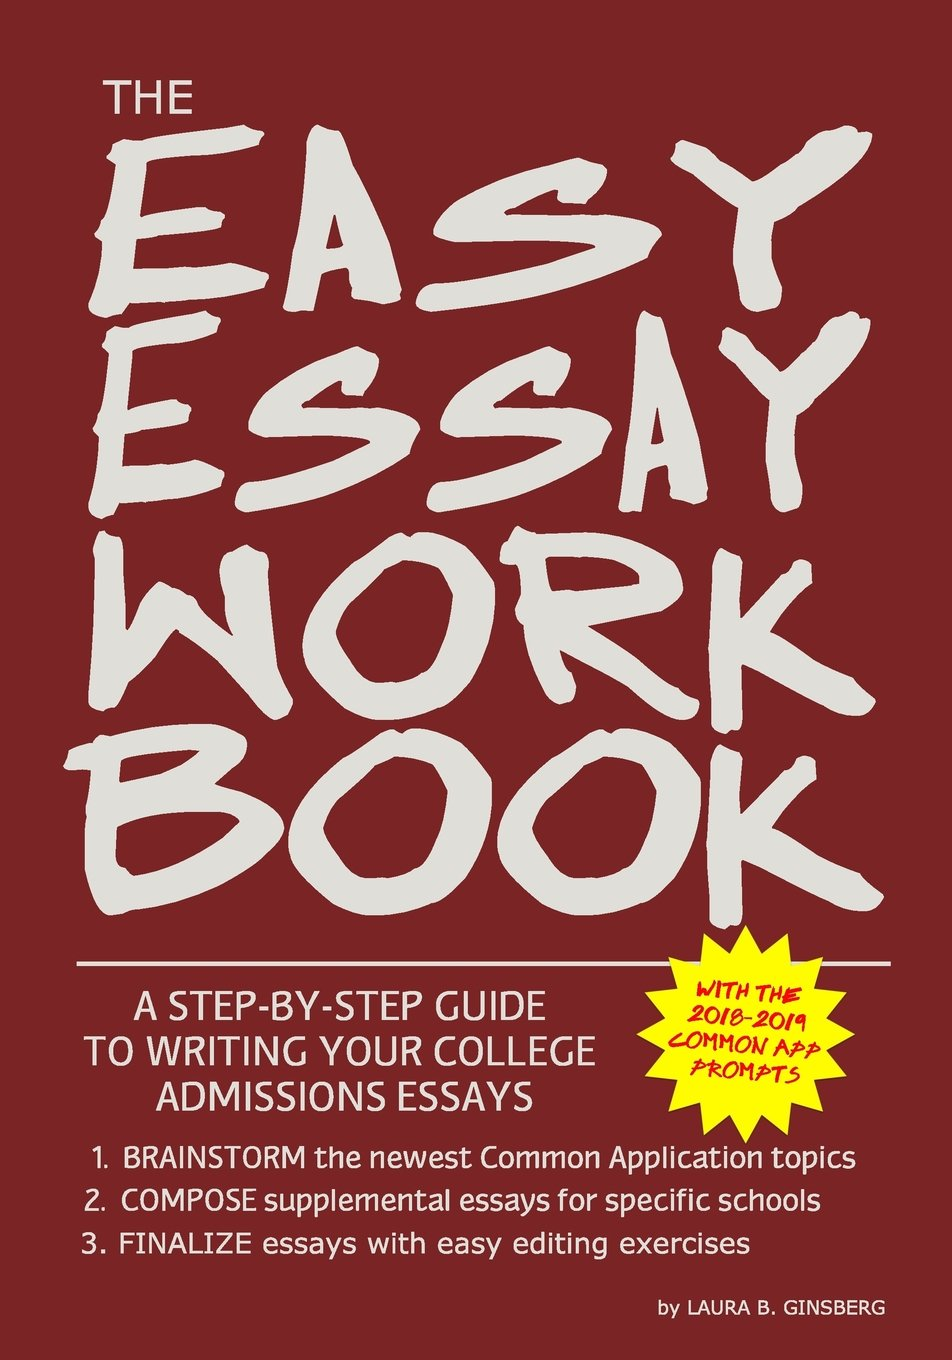 Best English Essay Topics The Easy Essay Workbook A Stepbystep Guide To Writing Your College Essays  Laura B Ginsberg Eric Ginsberg  Amazoncom Books Essay About Healthy Eating also Student Life Essay In English The Easy Essay Workbook A Stepbystep Guide To Writing Your  English Language Essay